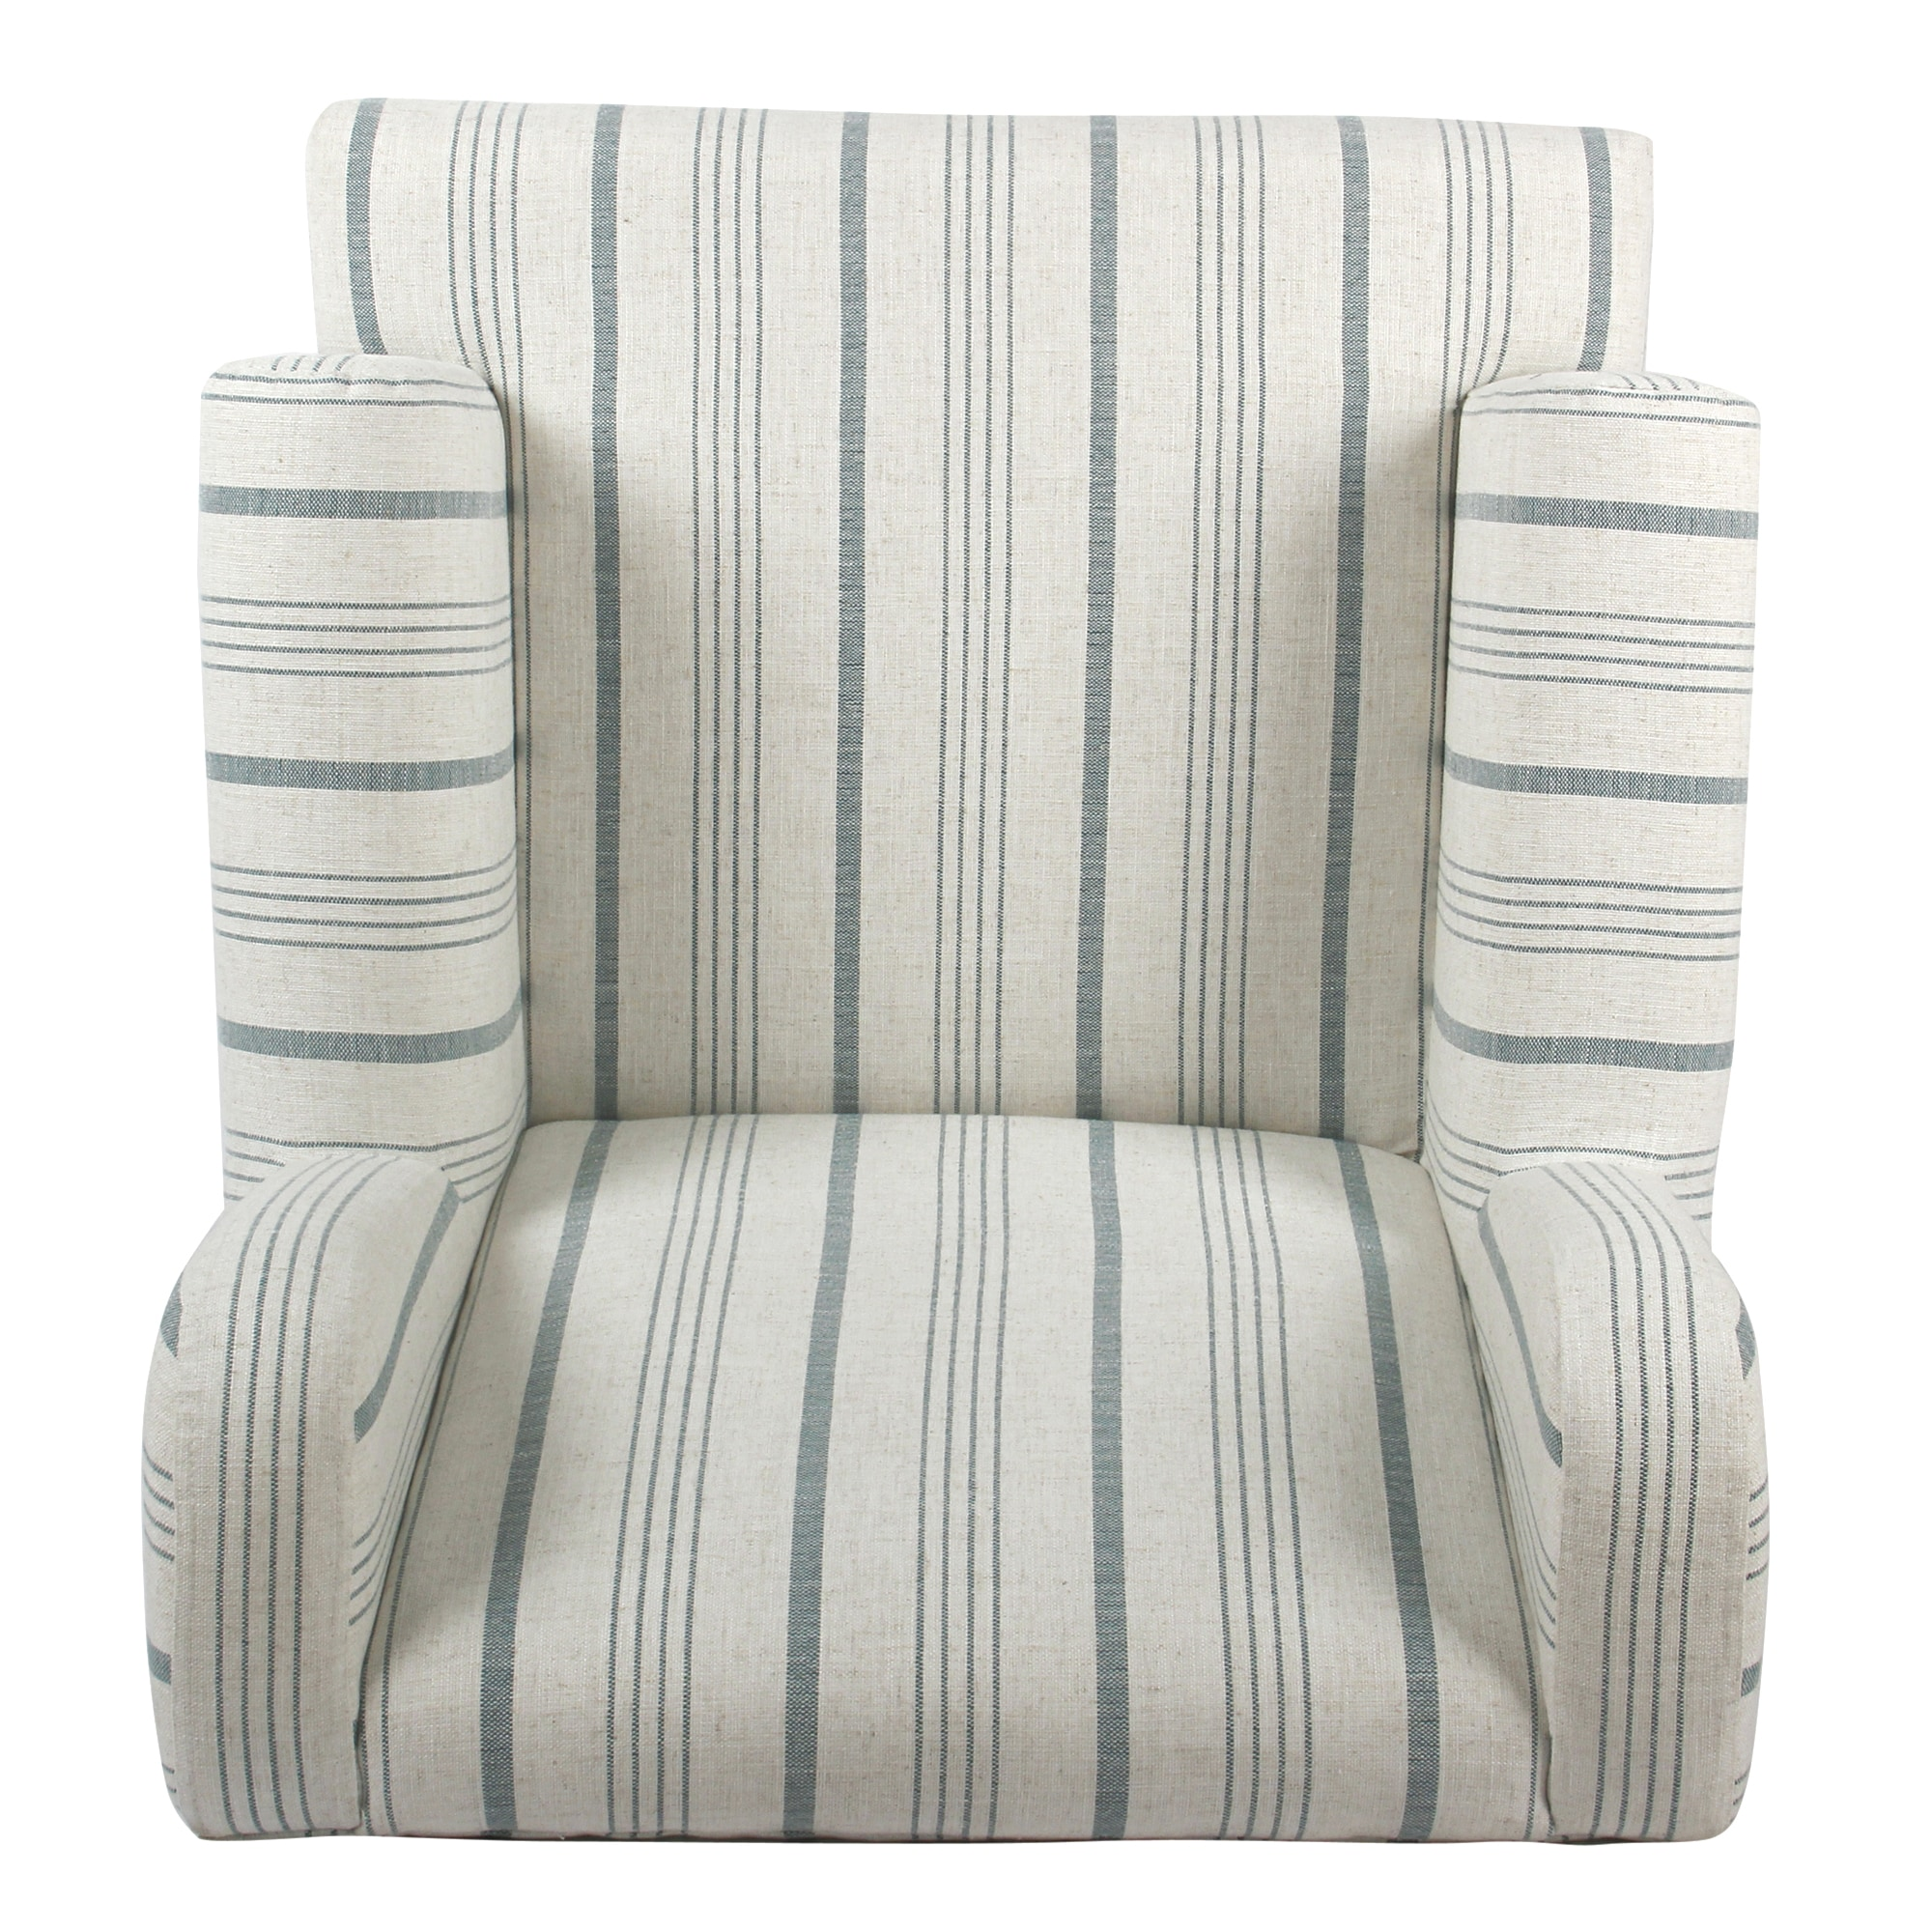 Beige Accent Chairs With Blue Stripes.Homepop Emerson Rolled Arm Accent Chair Blue Calypso Stripe